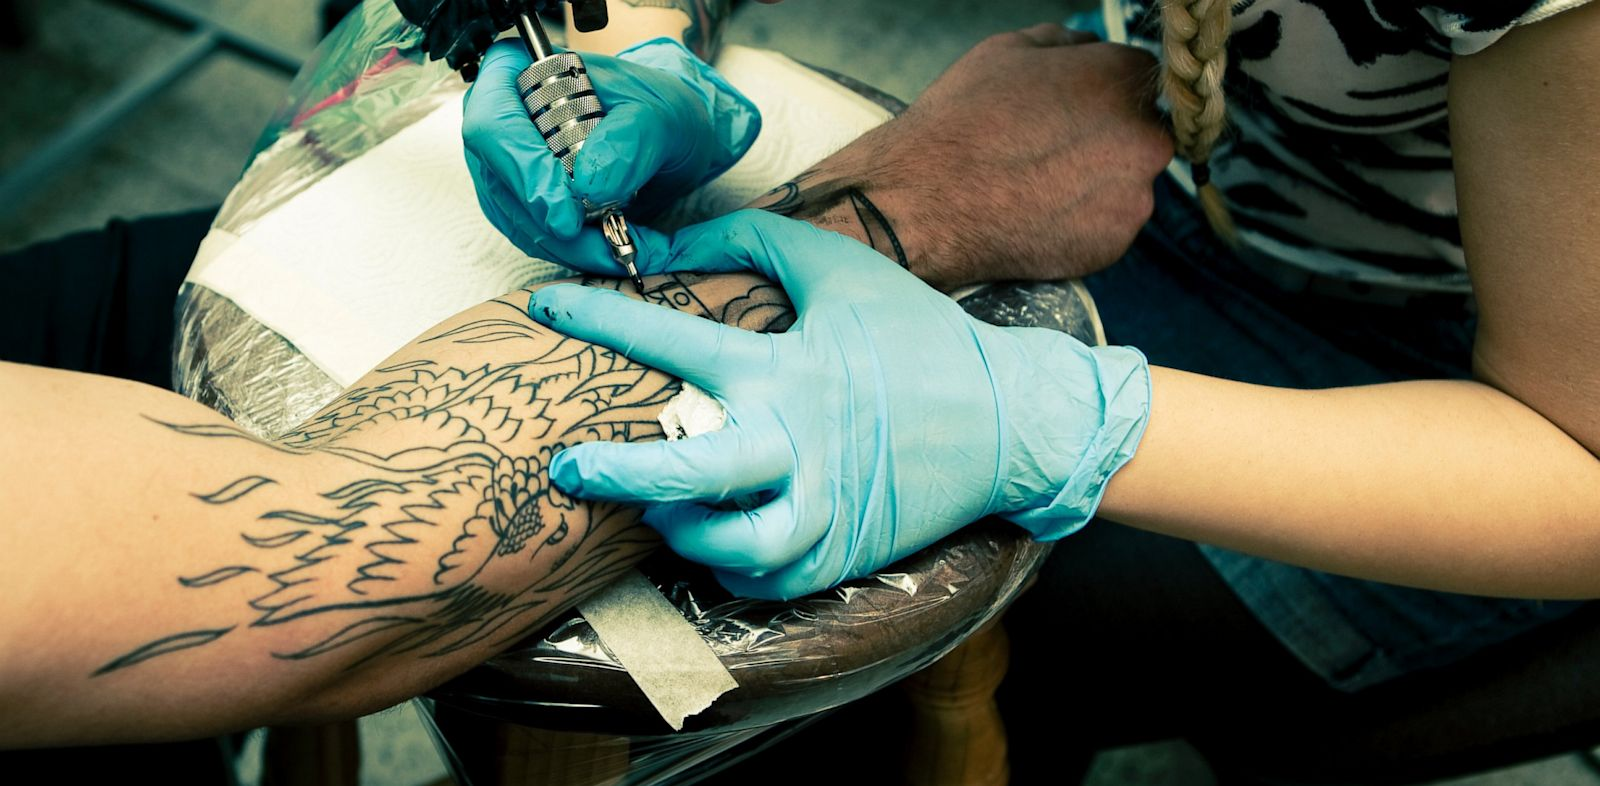 PHOTO: A Washington D.C. law could make people wait 24 hours before getting tattoos and piercings